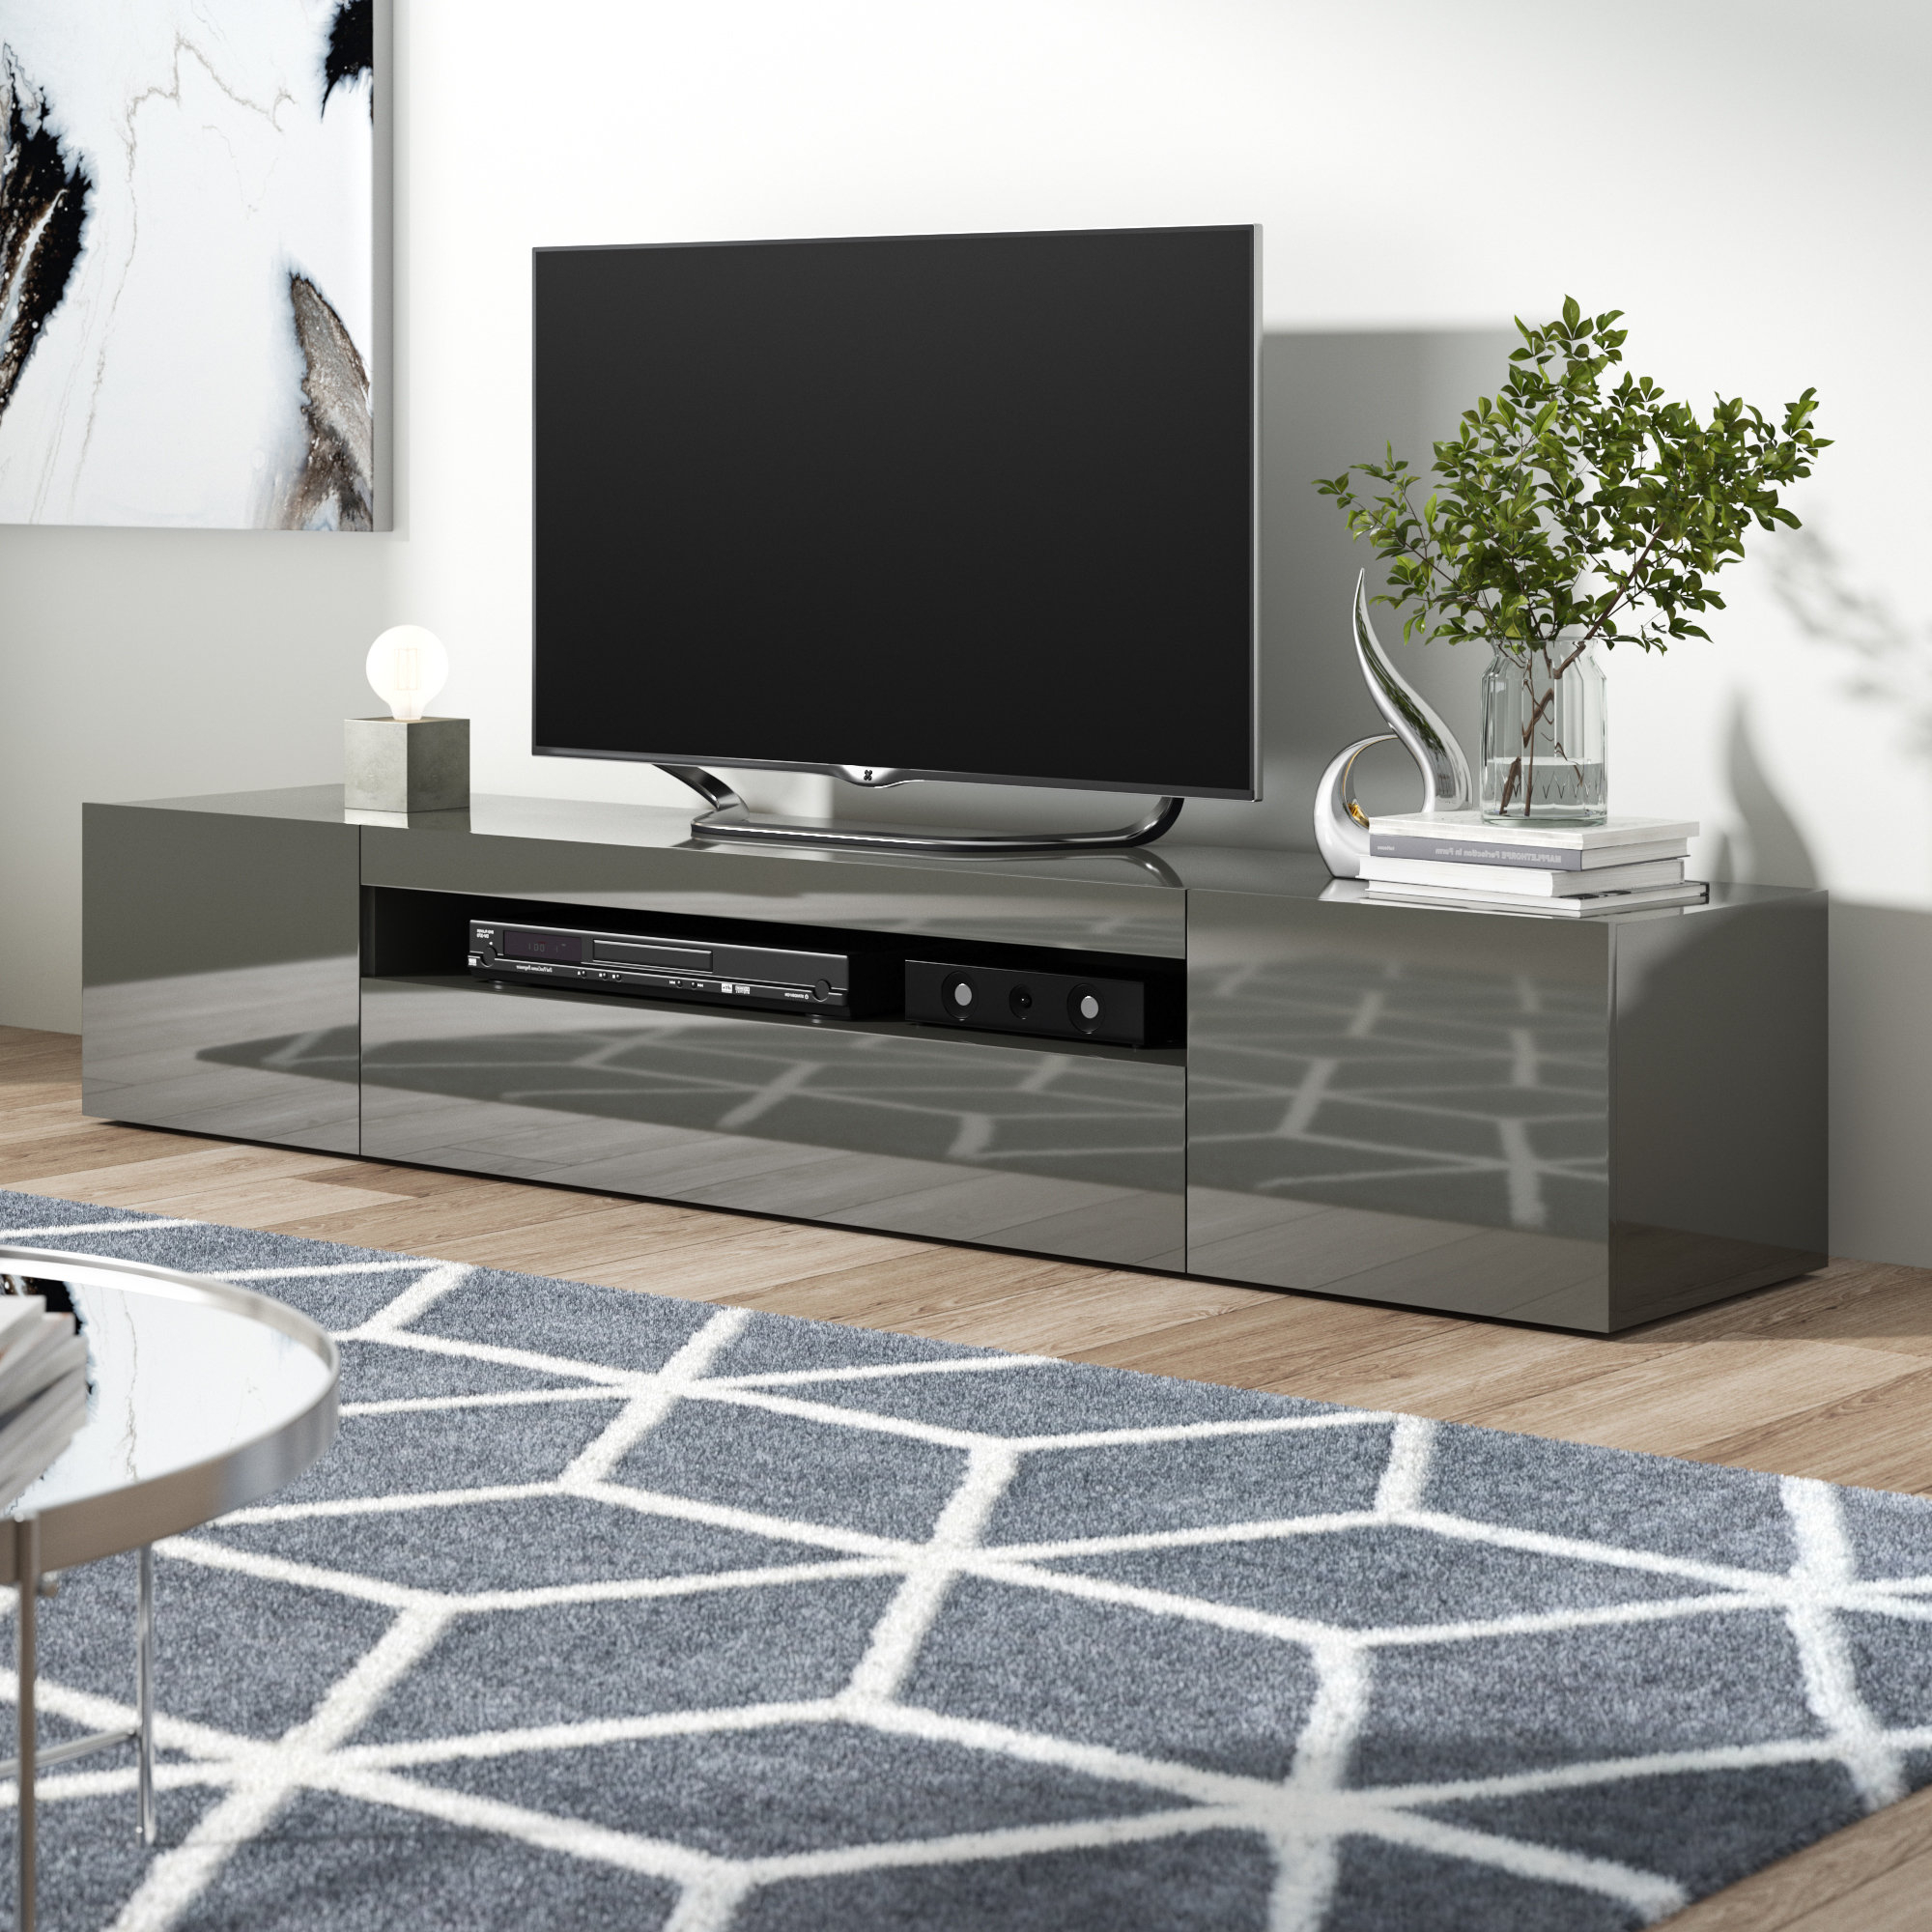 65 Inch Tv Stands (Gallery 16 of 20)